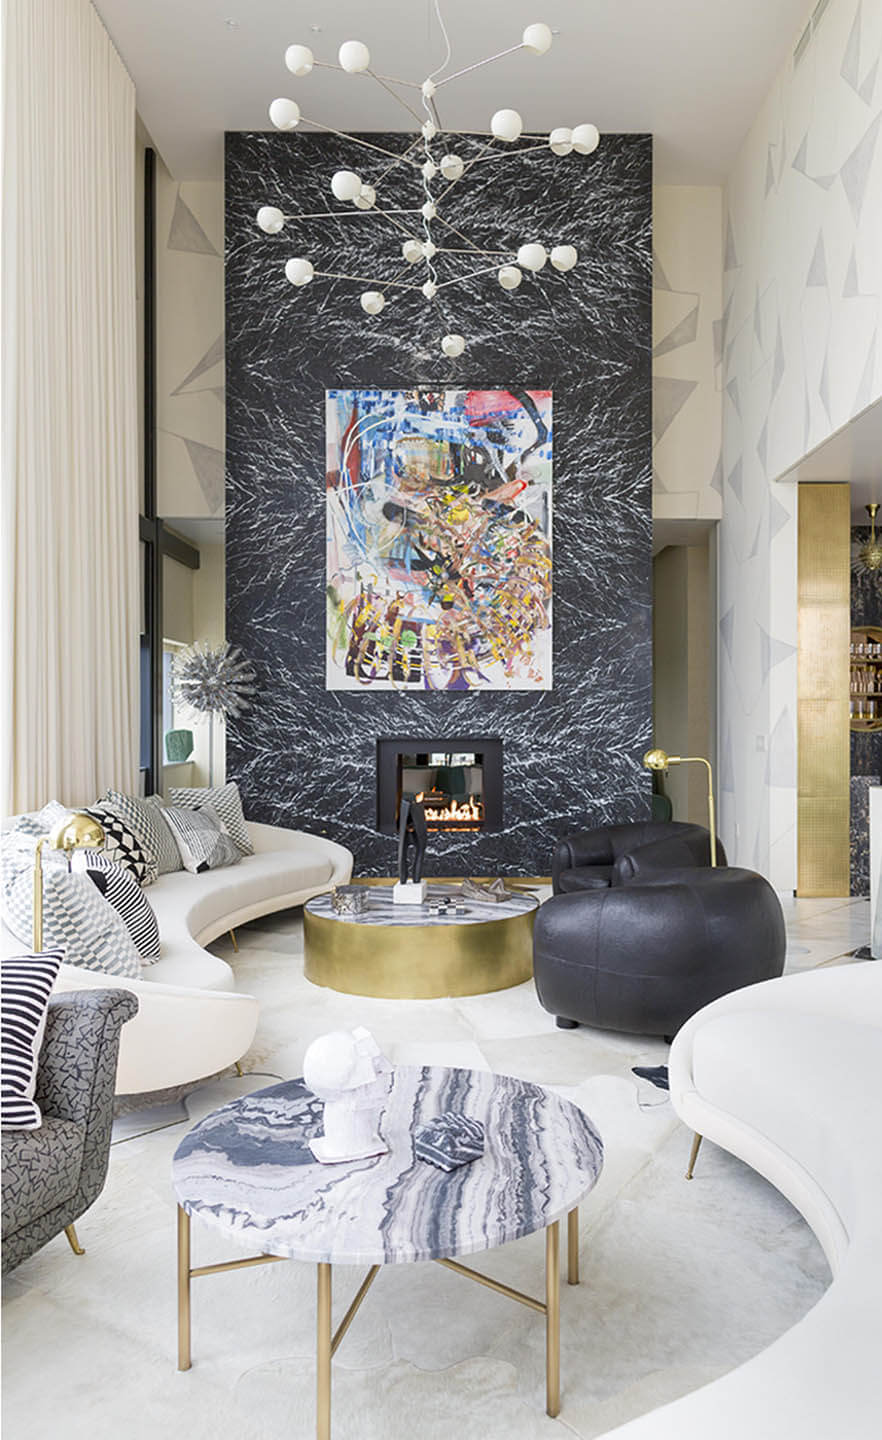 The best Residential Interior Design Projects By Kelly Wearstler kelly wearstler The best Residential Interior Design Projects By Kelly Wearstler the best residential interior design projects kelly wearstler 2